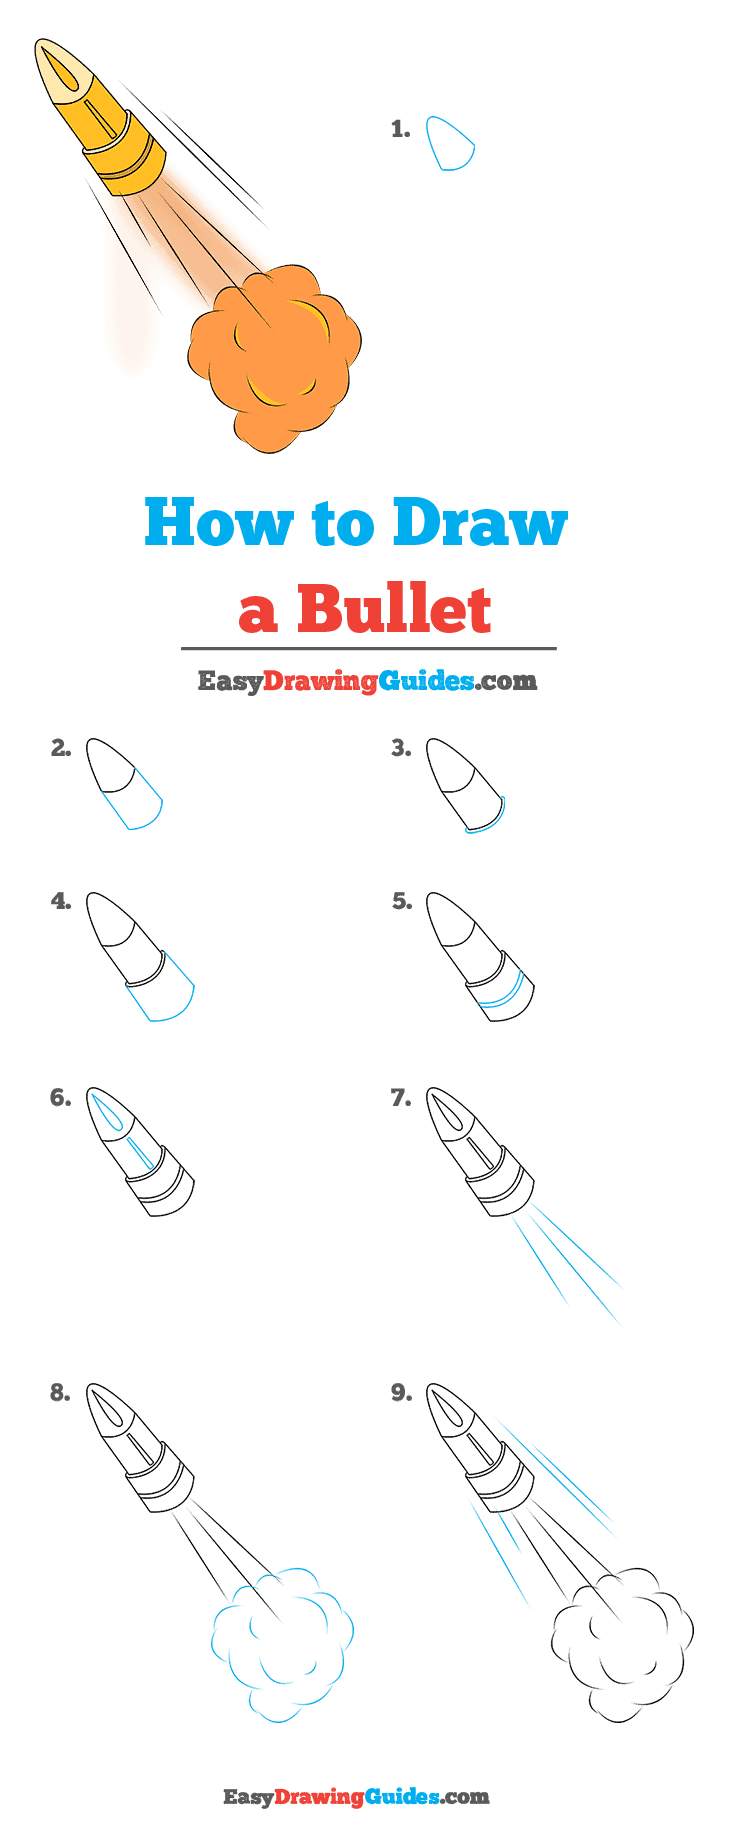 How to Draw Bullet